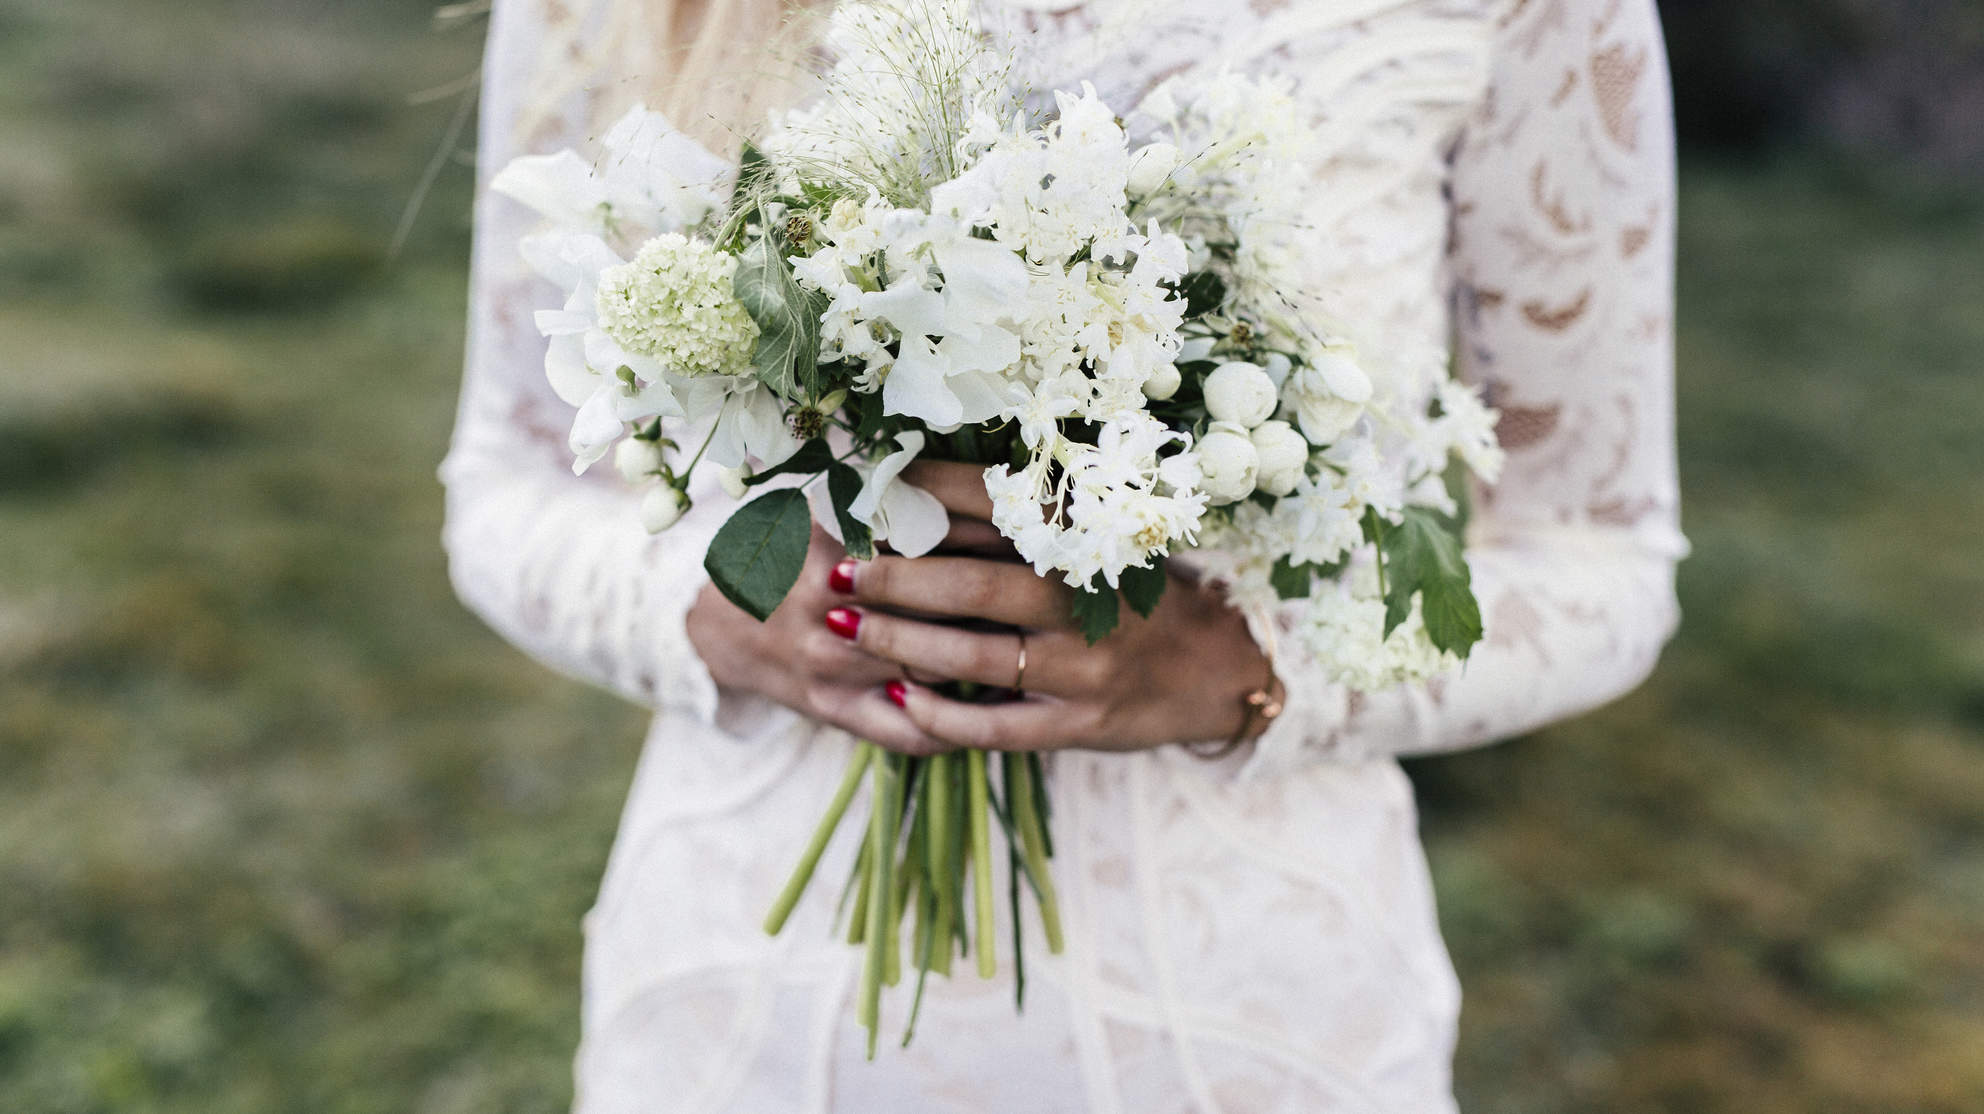 bride in wedding dress holding flowers